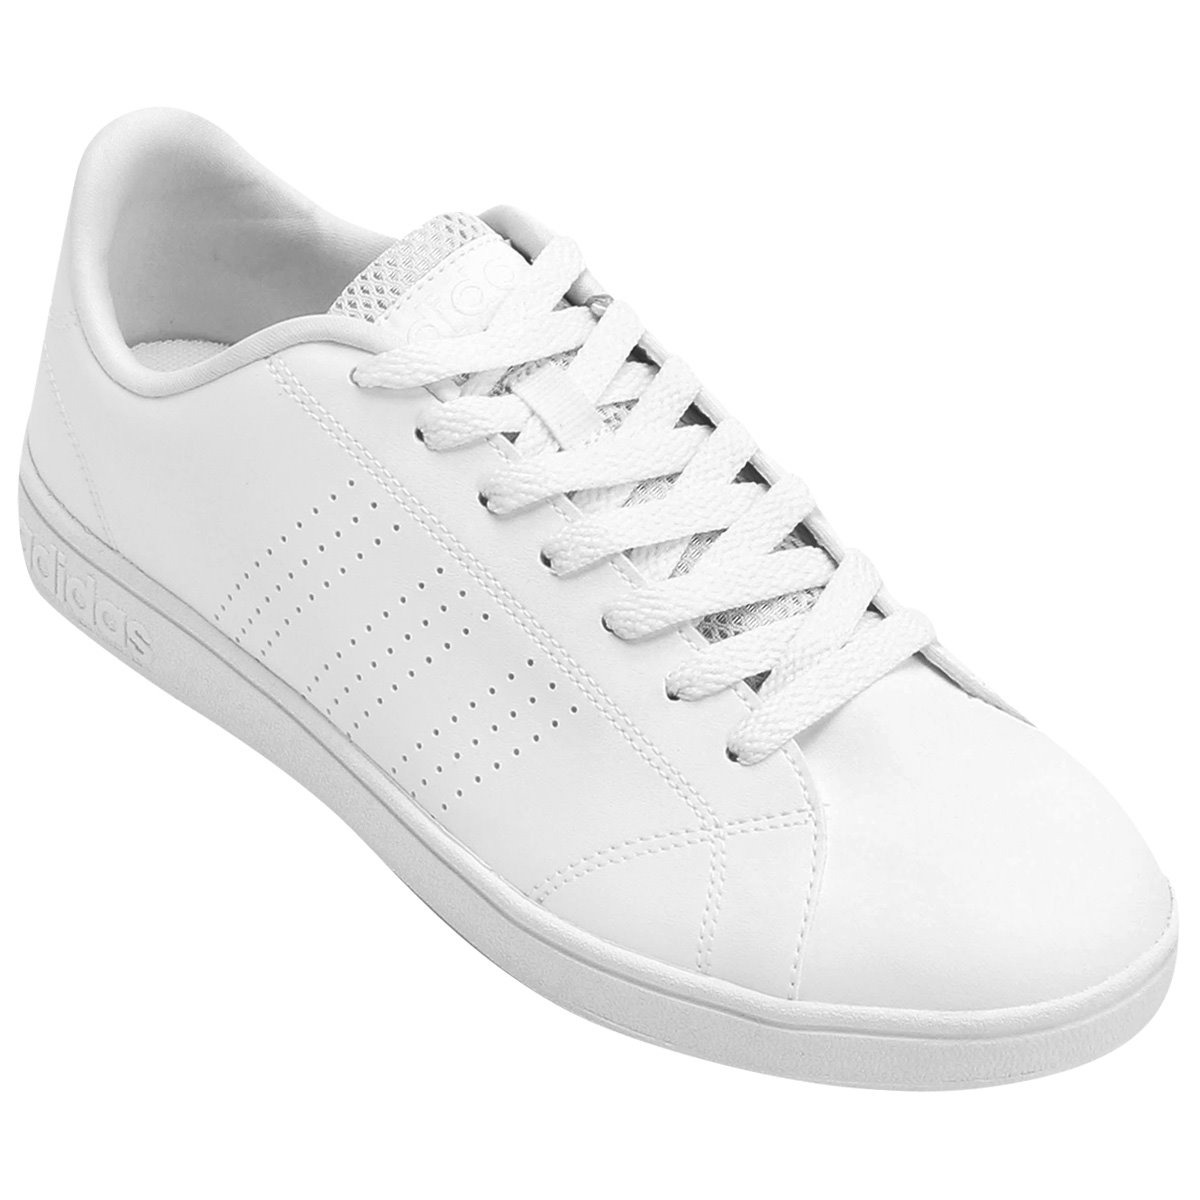 tenis adidas neo advantage clean vs original branco. Carregando zoom. 3f19fc03089c0